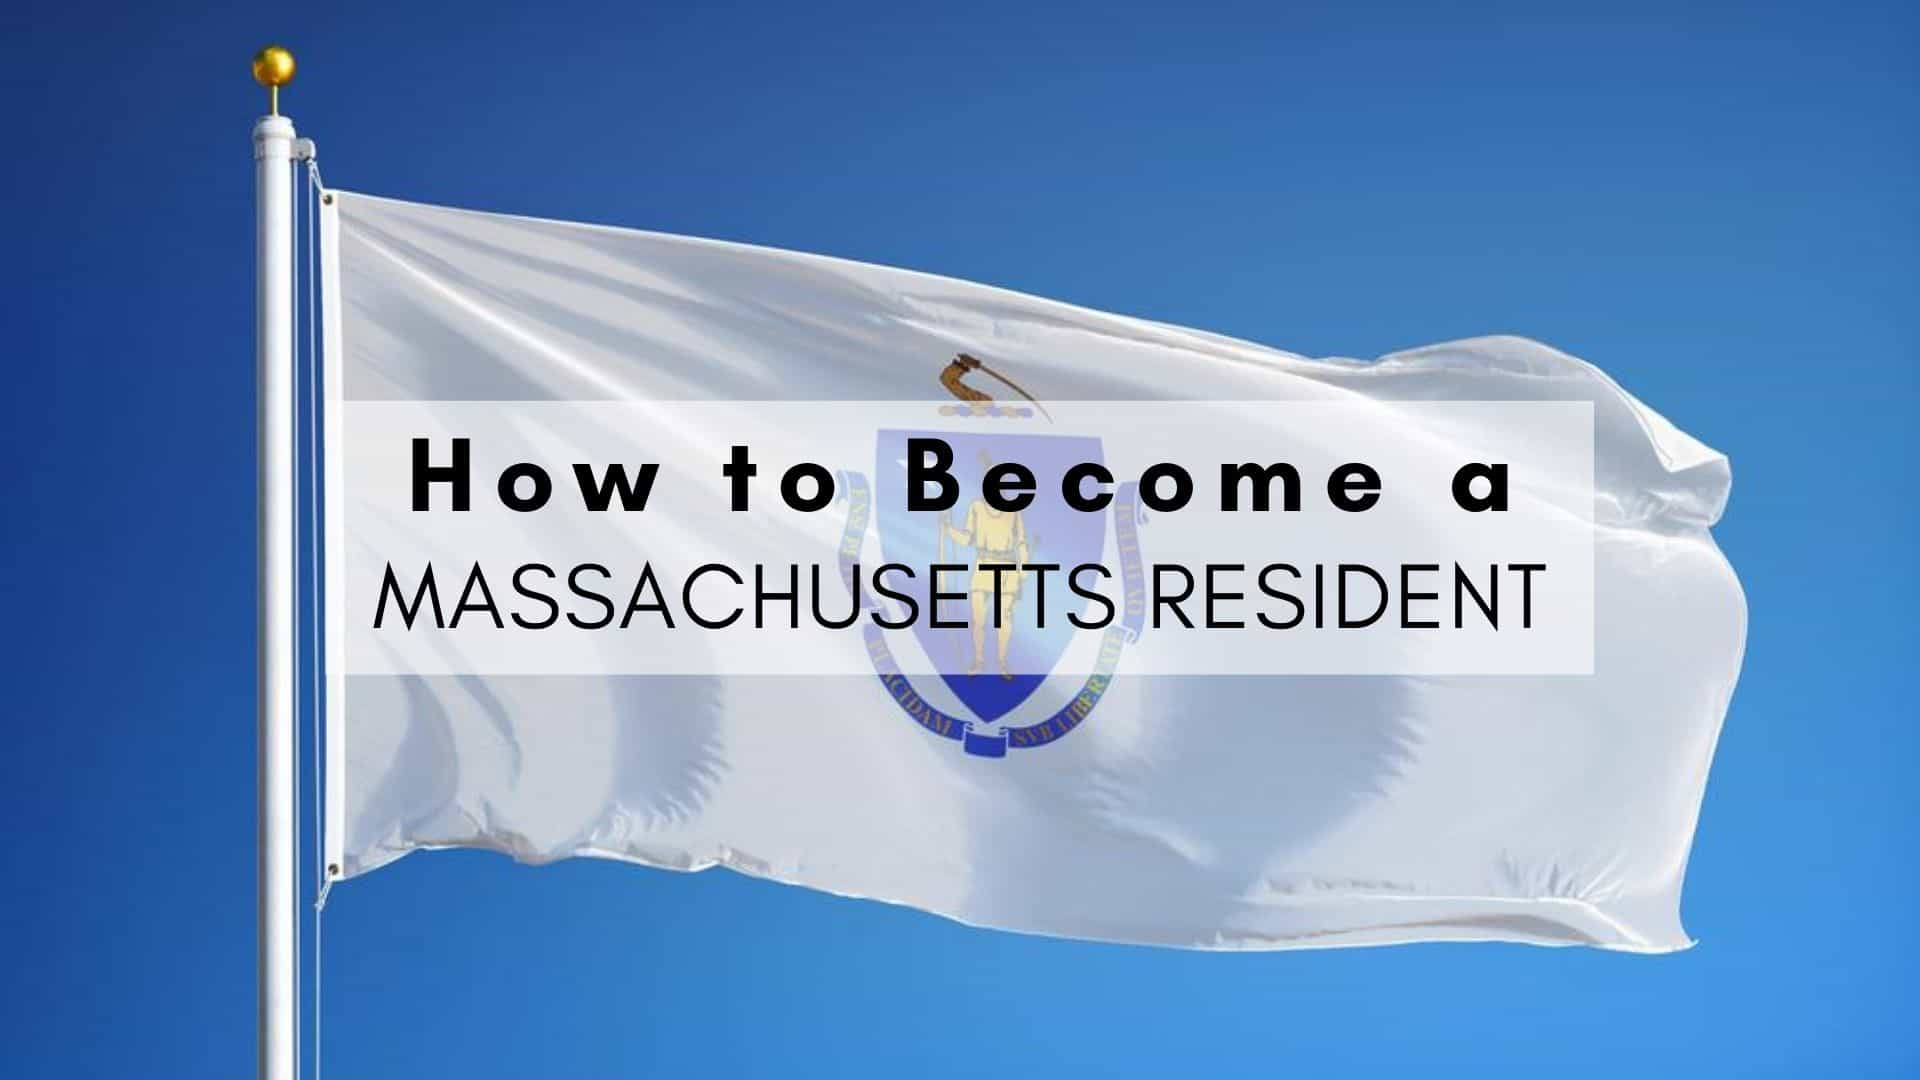 How to Become a Massachusetts Resident